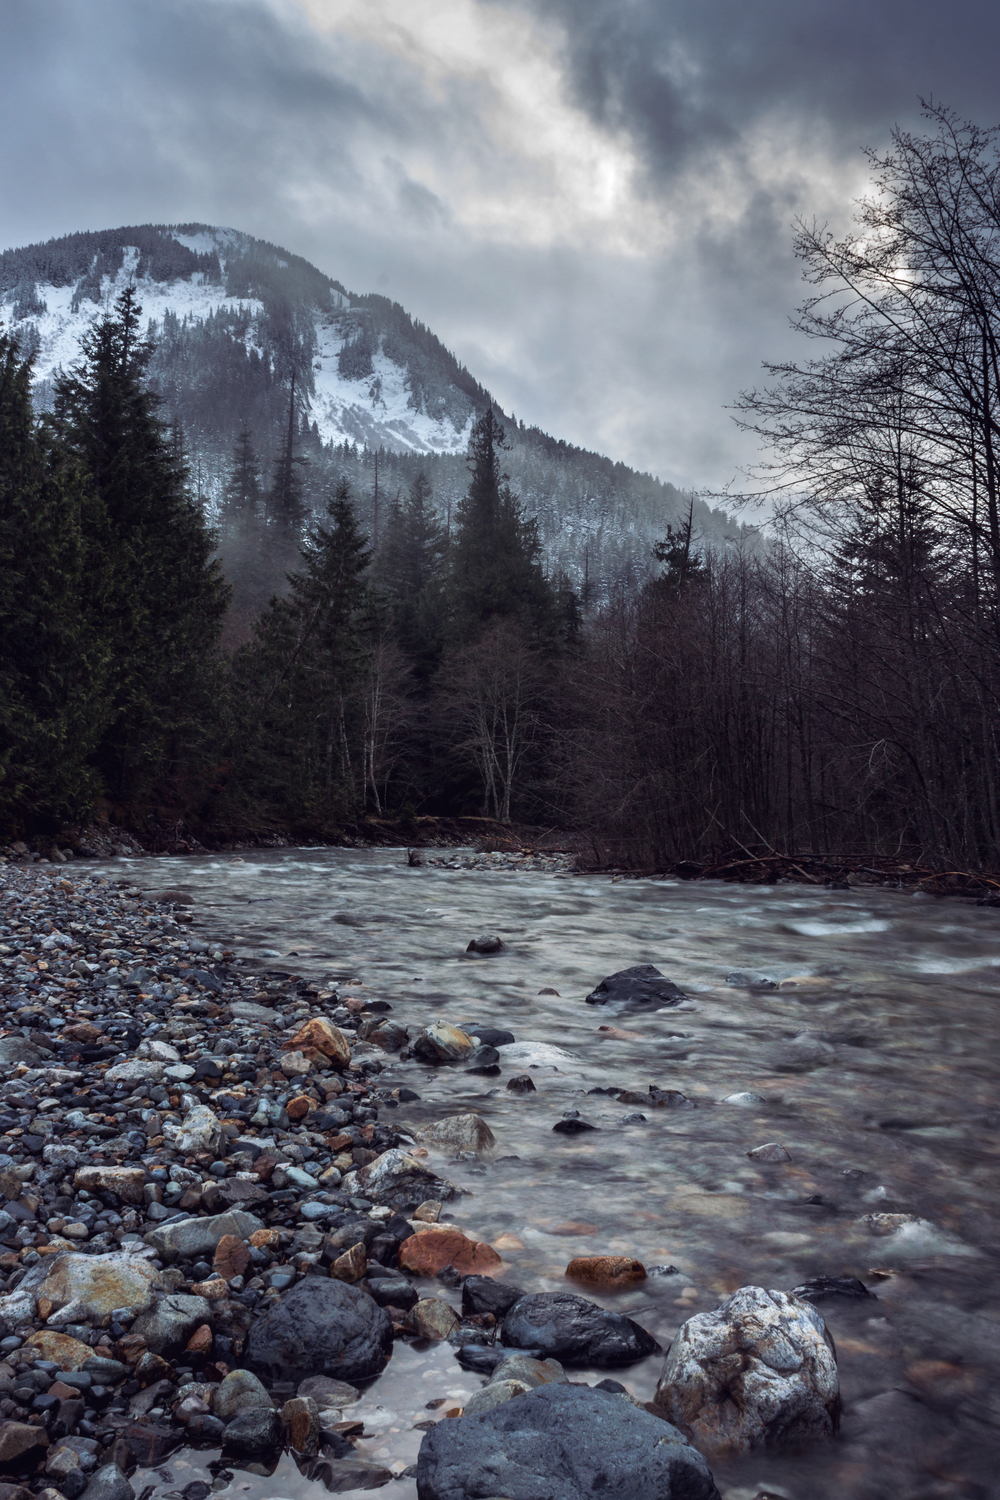 Stream in the Cascade Mountains near Snoqualmie Pass, WA.